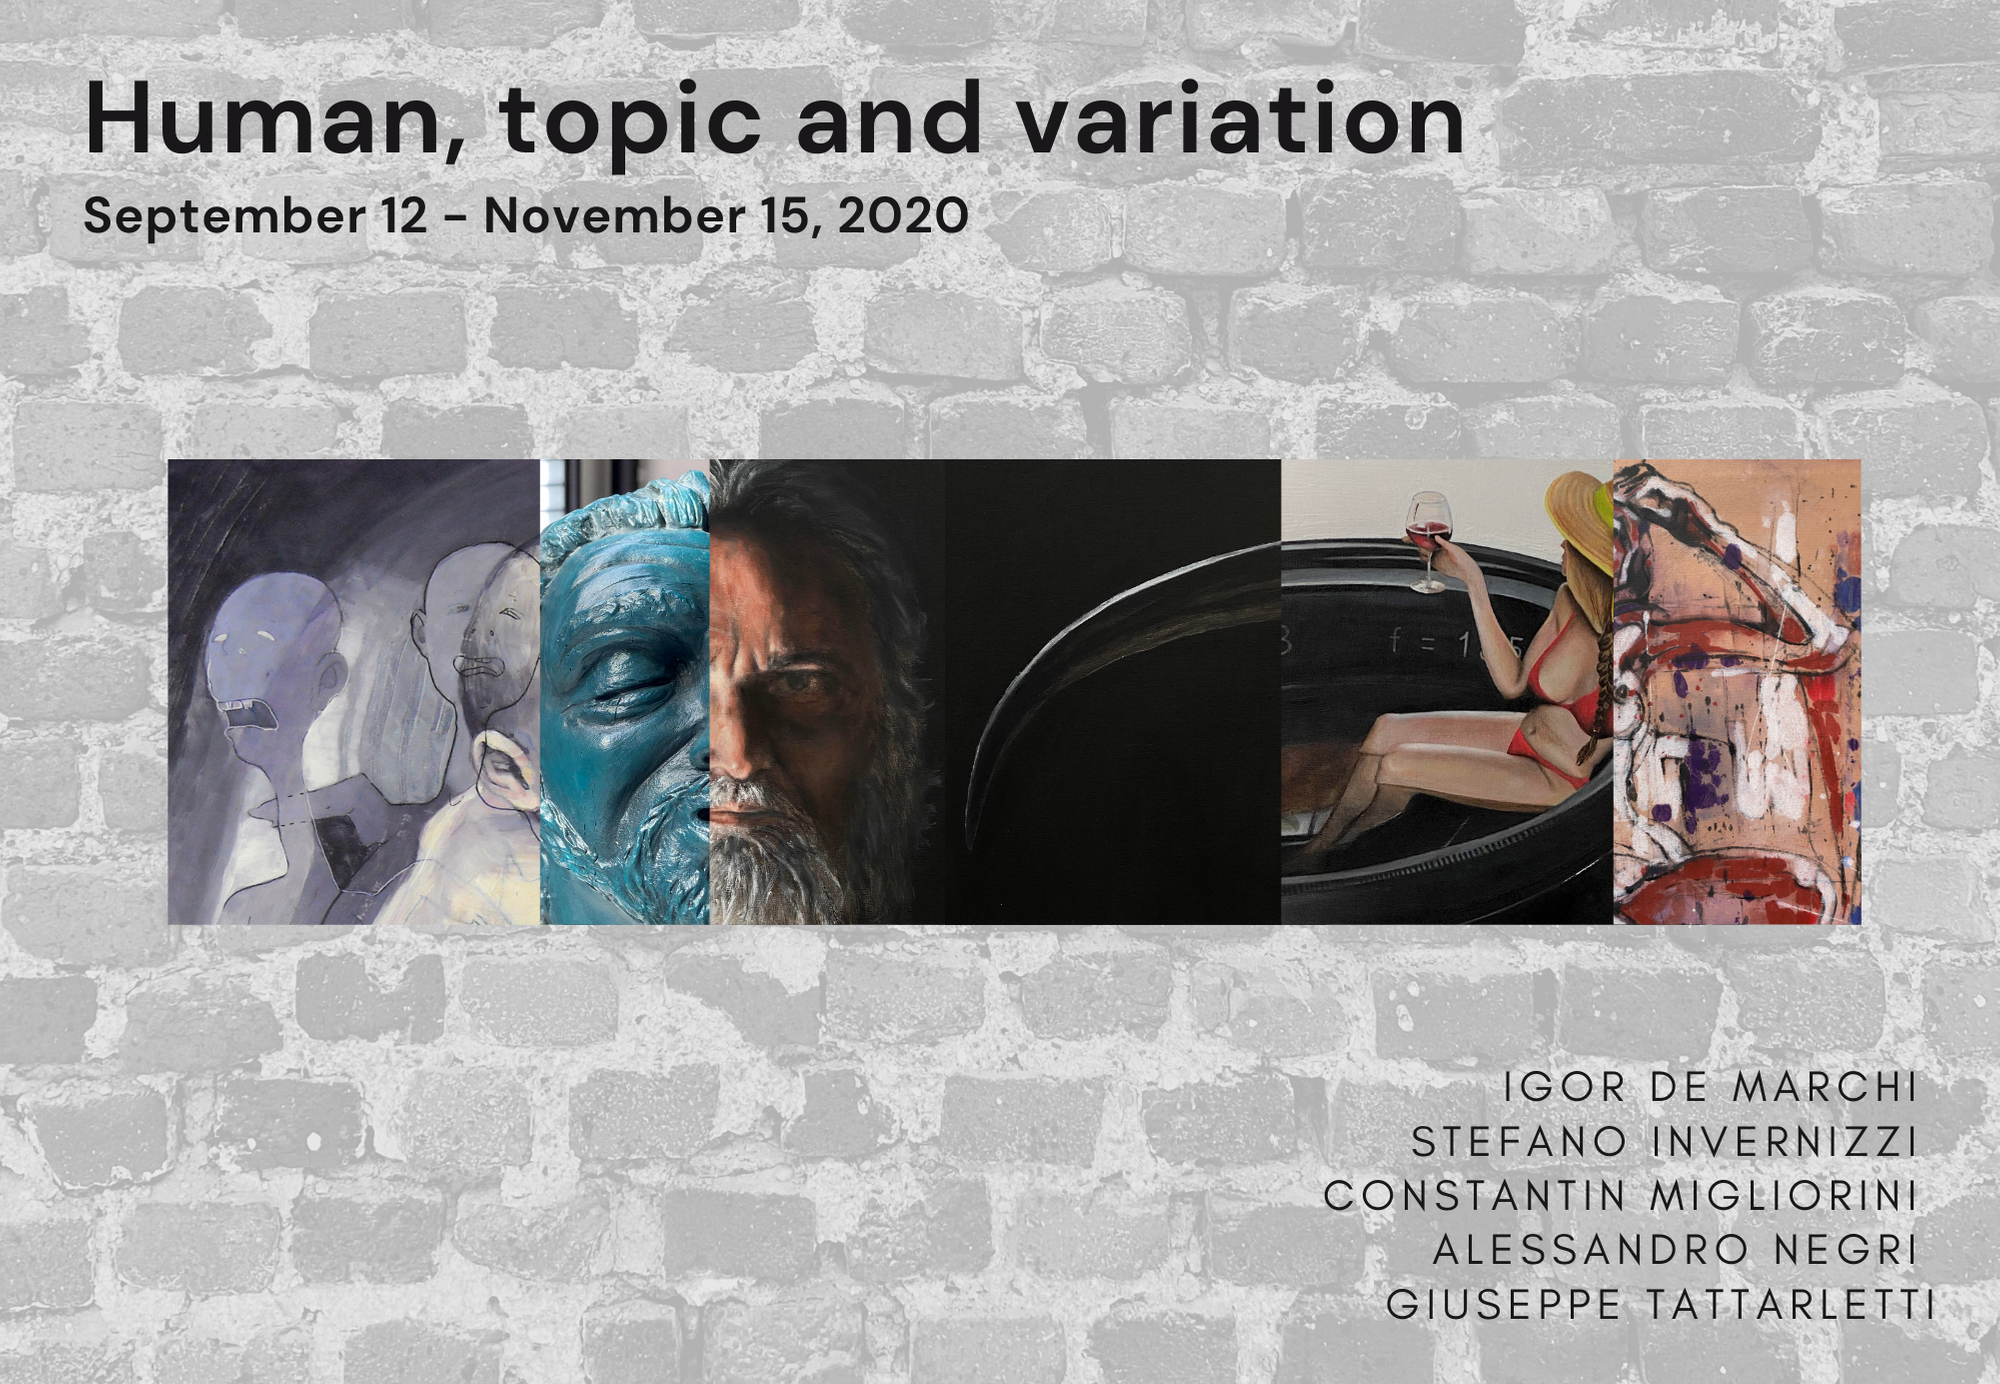 Human, topic and variations